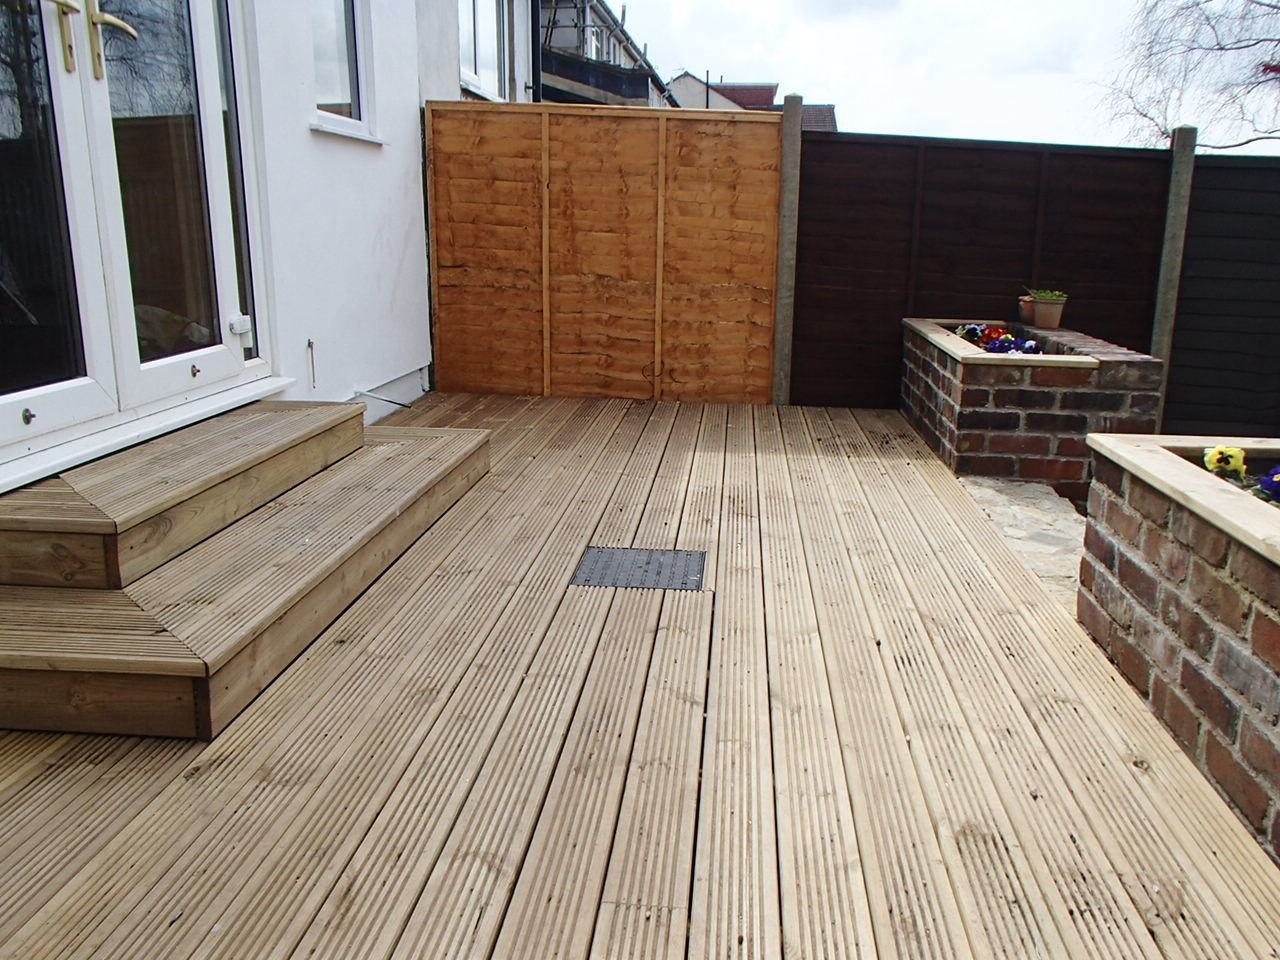 The finished decking.  Time to crack open a beer and try it out.